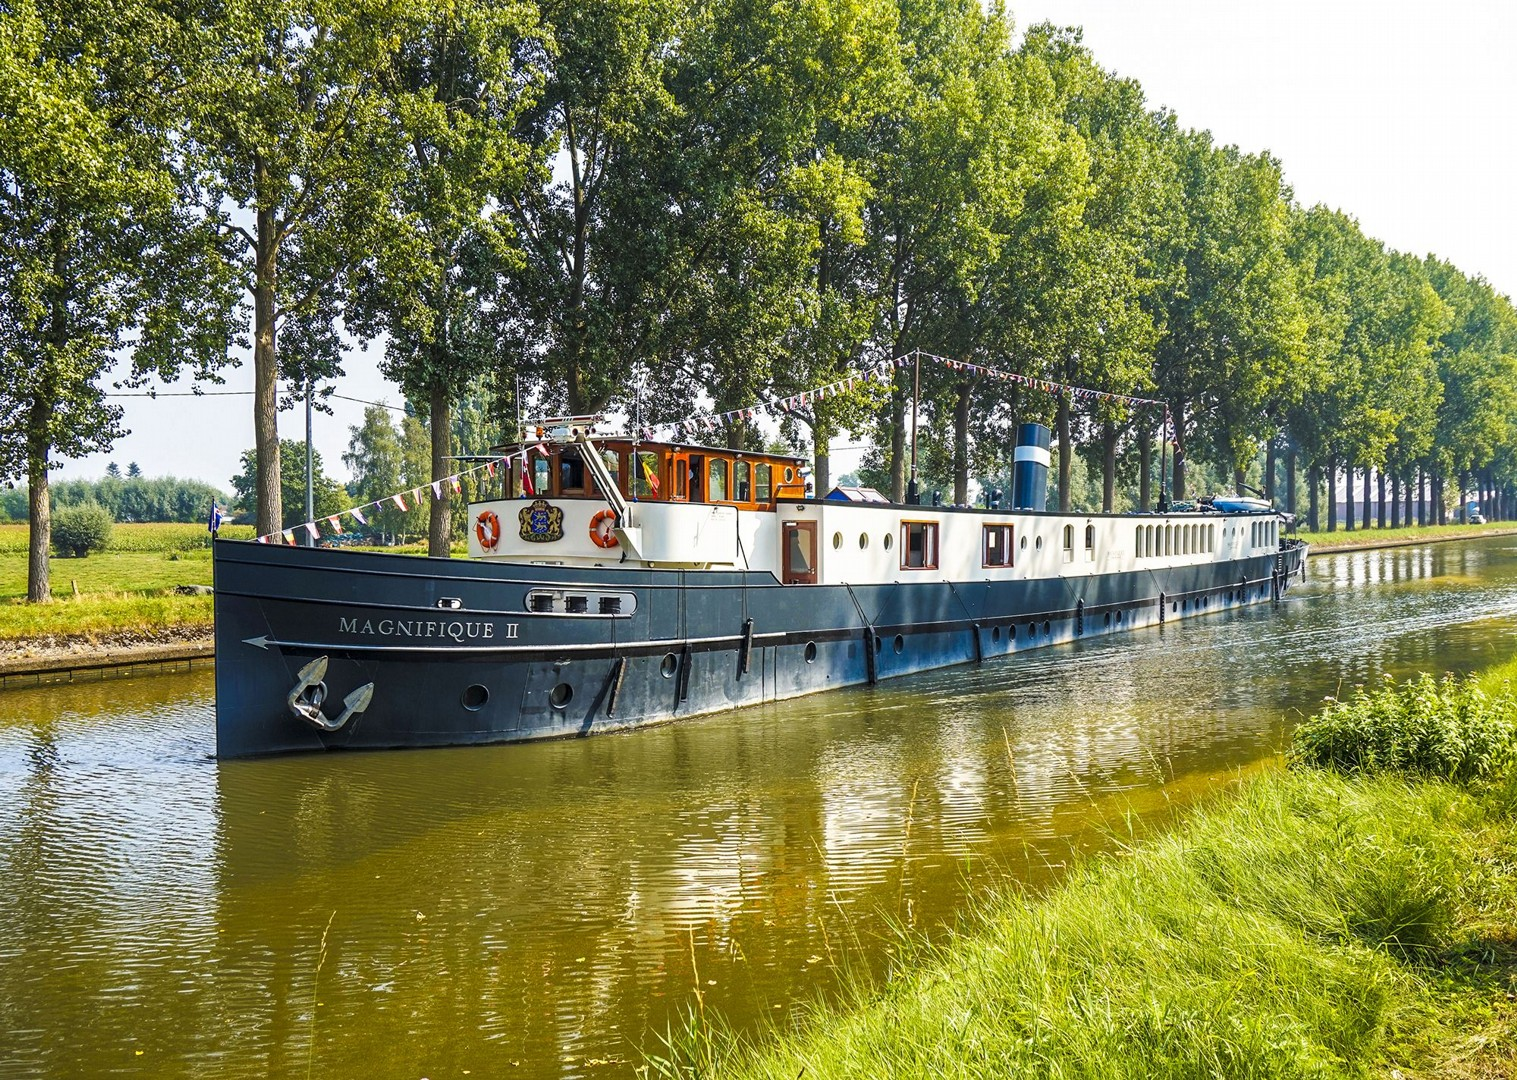 comfortable-luxury-boat-accommodation-cycling-tour-saddle-skedaddle.jpg - Holland and Belgium - Amsterdam to Bruges - Premium Bike and Barge Holiday - Leisure Cycling